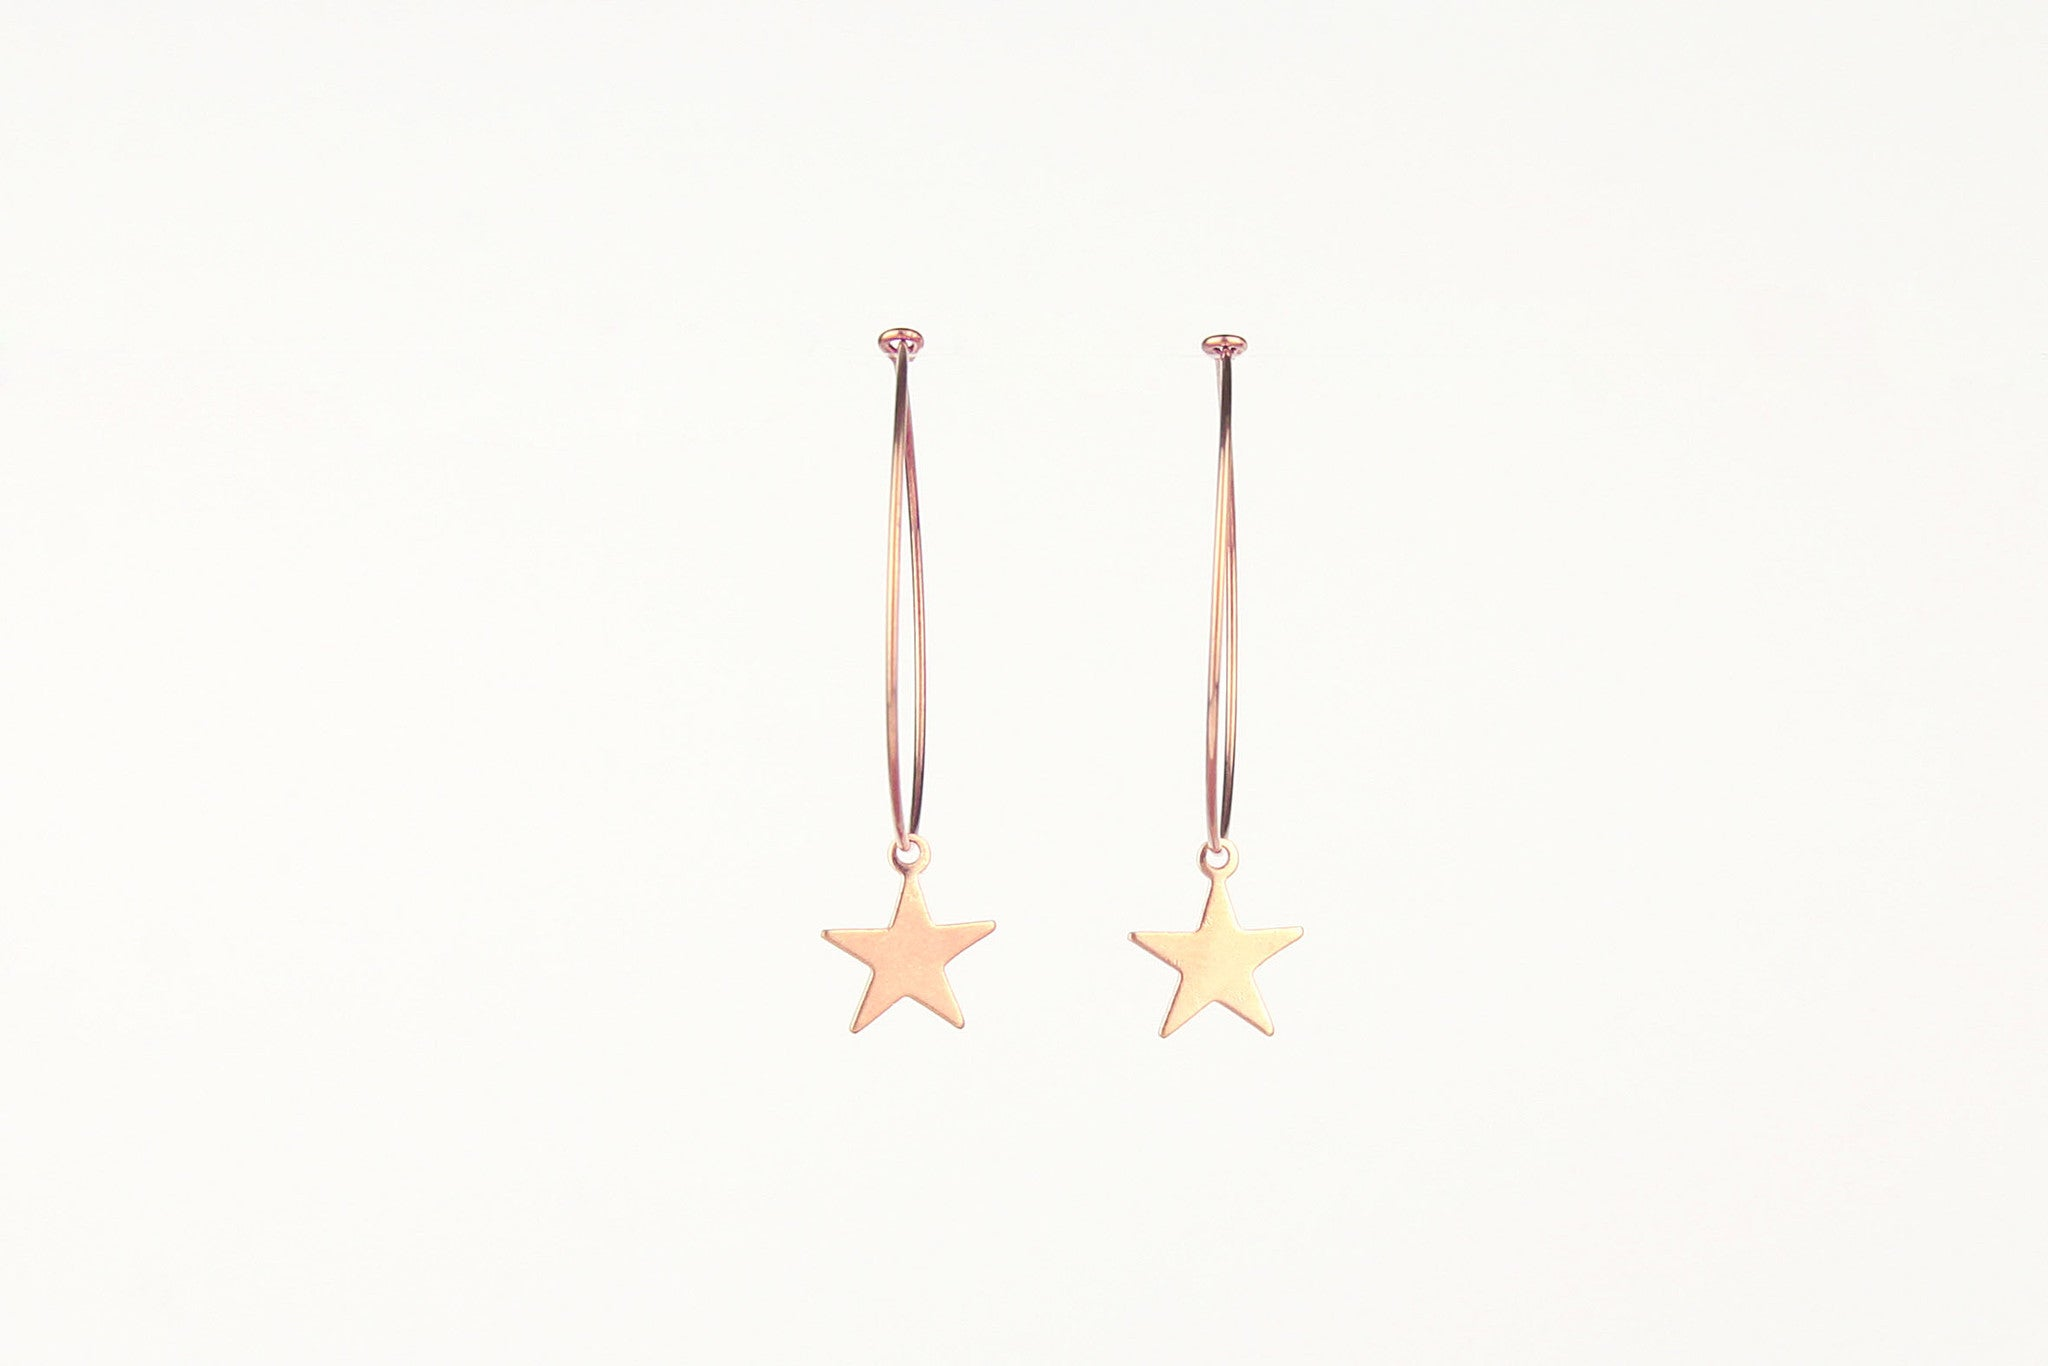 jewelberry ohrringe earrings plain star hoops rose gold plated sterling silver fine jewelry handmade with love fairtrade